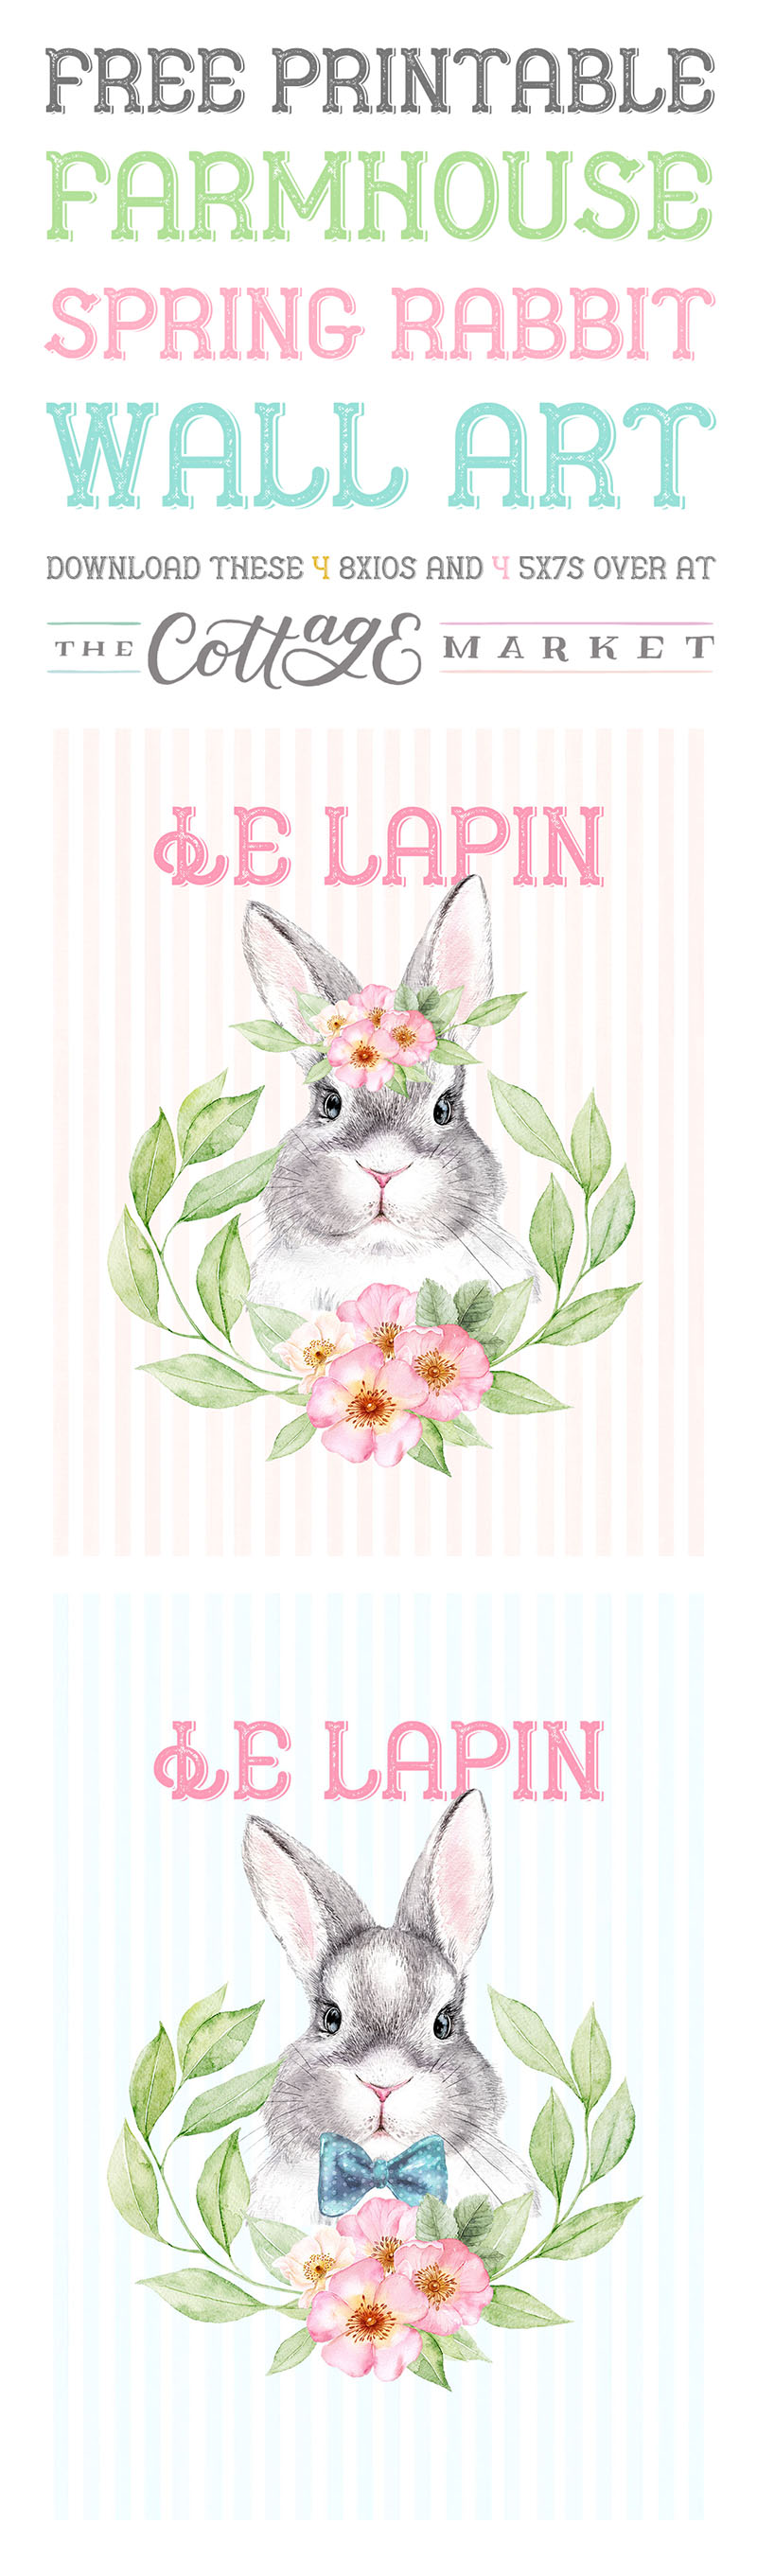 This Set of Free Printable Farmhouse Spring Rabbit Wall Art could be just what your Gallery Wall or Vignette has been looking for! In true French Cottage Farmhouse Style you will find 2 Rabbits you will adore!